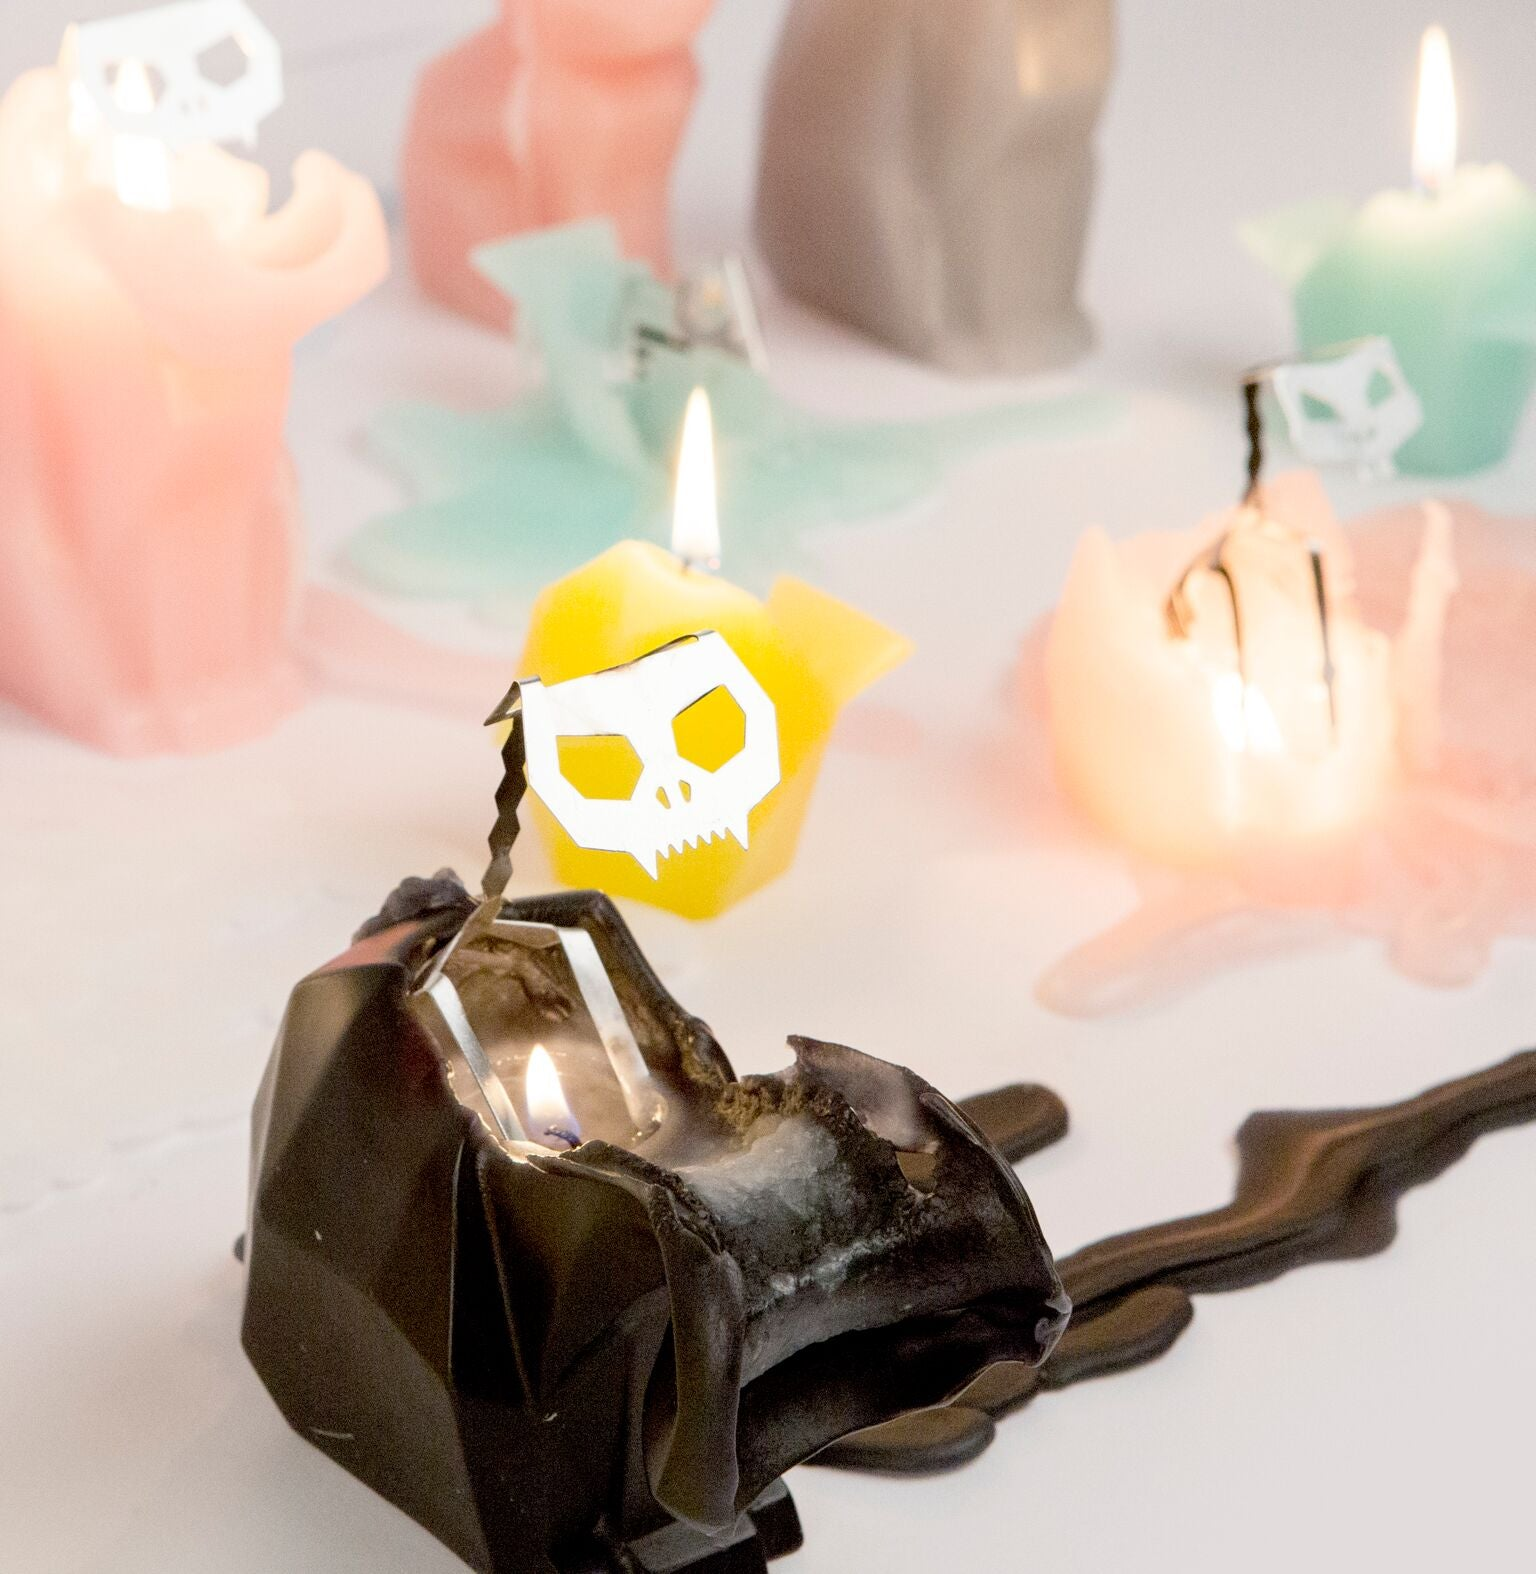 Pyropets featured as one of 10 Creepy Candles to Get you in the Halloween Mood